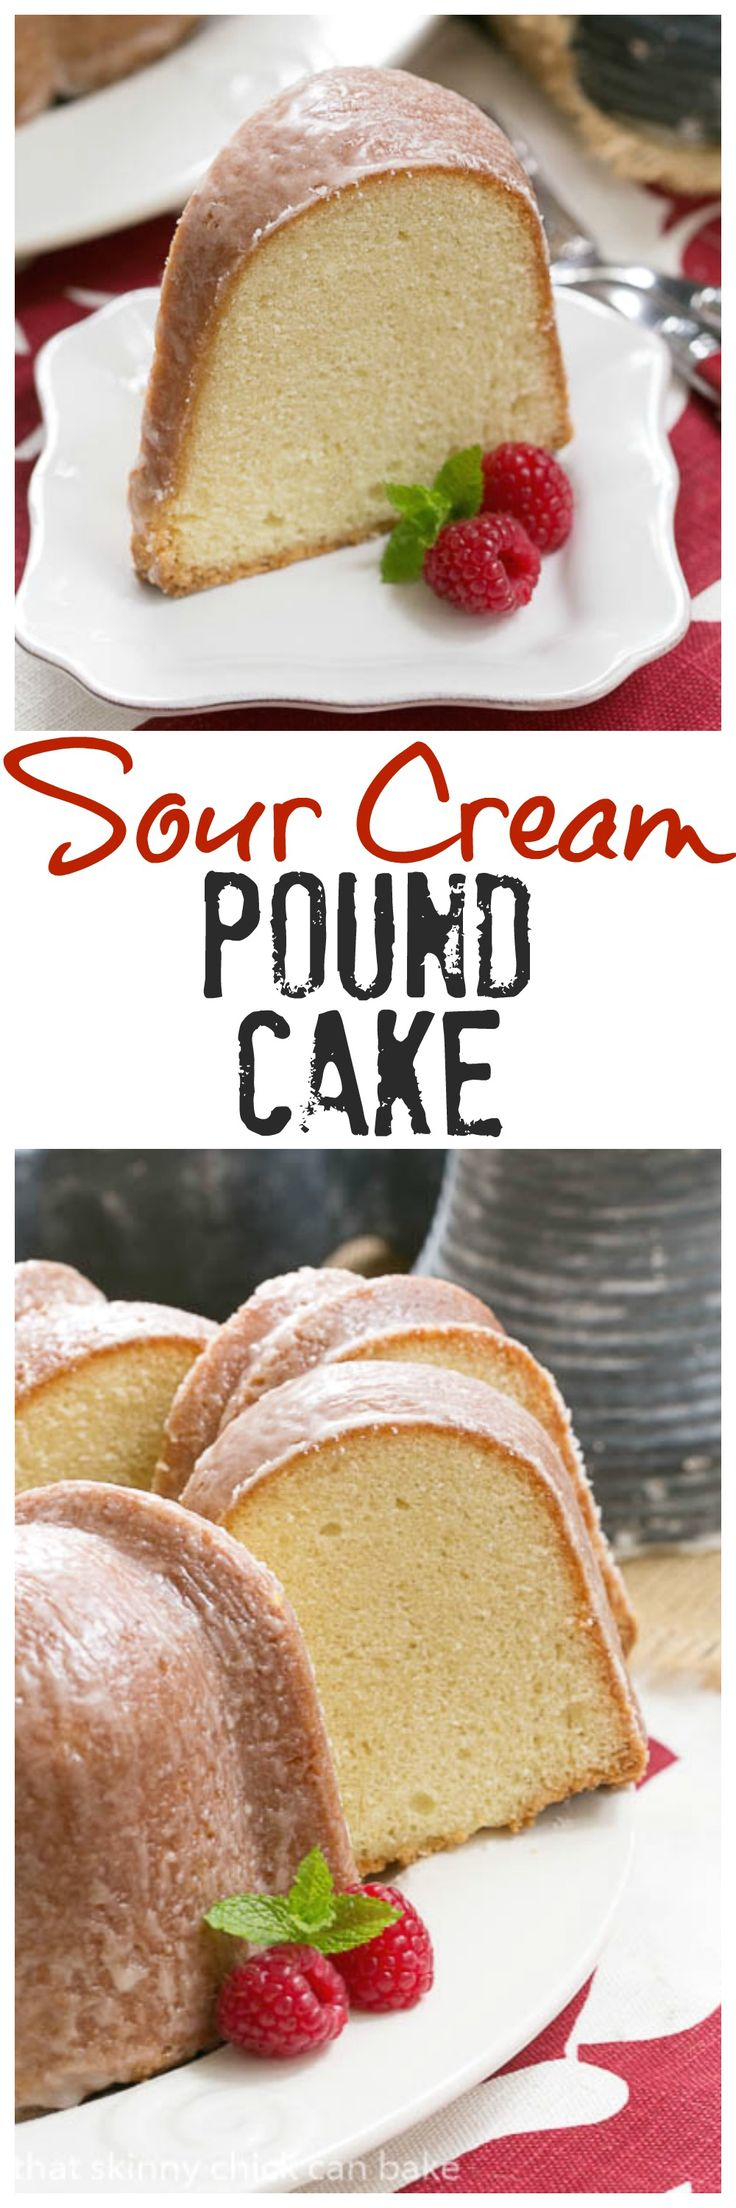 Sour Cream Pound Cake | Dense, delectable with a touch of vanilla and almond @lizzydo